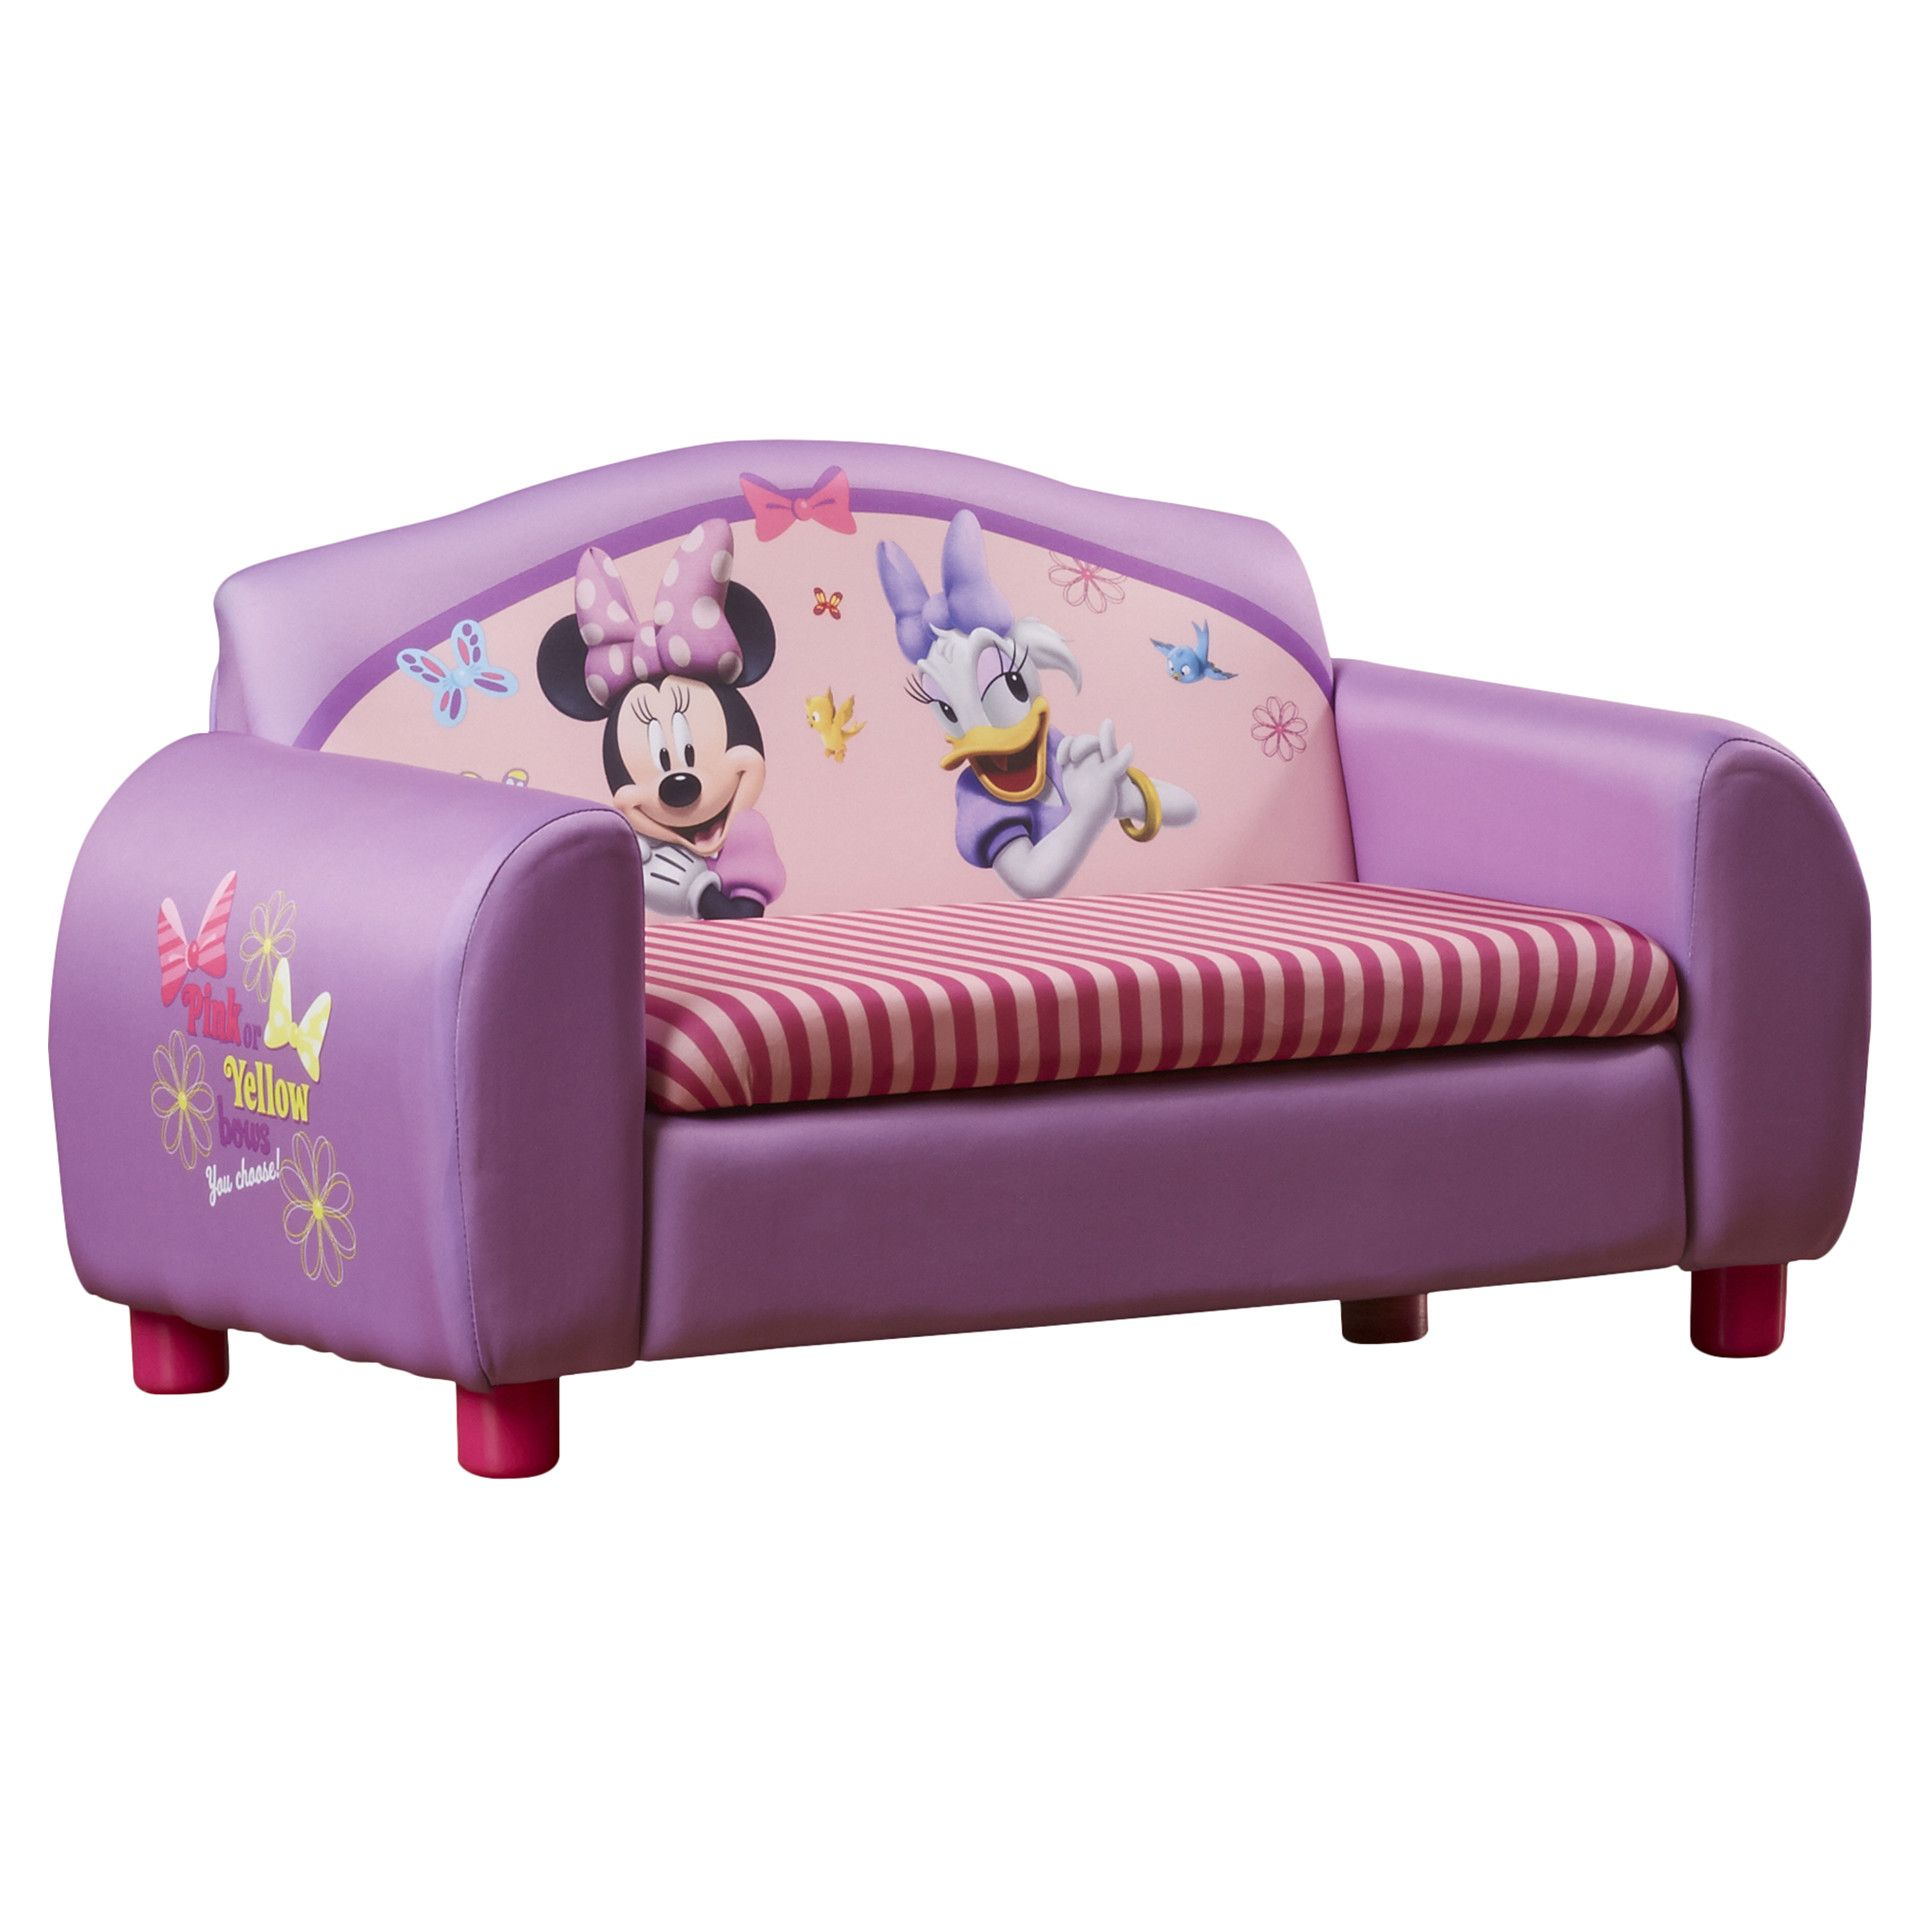 Superb Delta Children Disney Minnie Mouse Kids Sofa With Storage Pdpeps Interior Chair Design Pdpepsorg